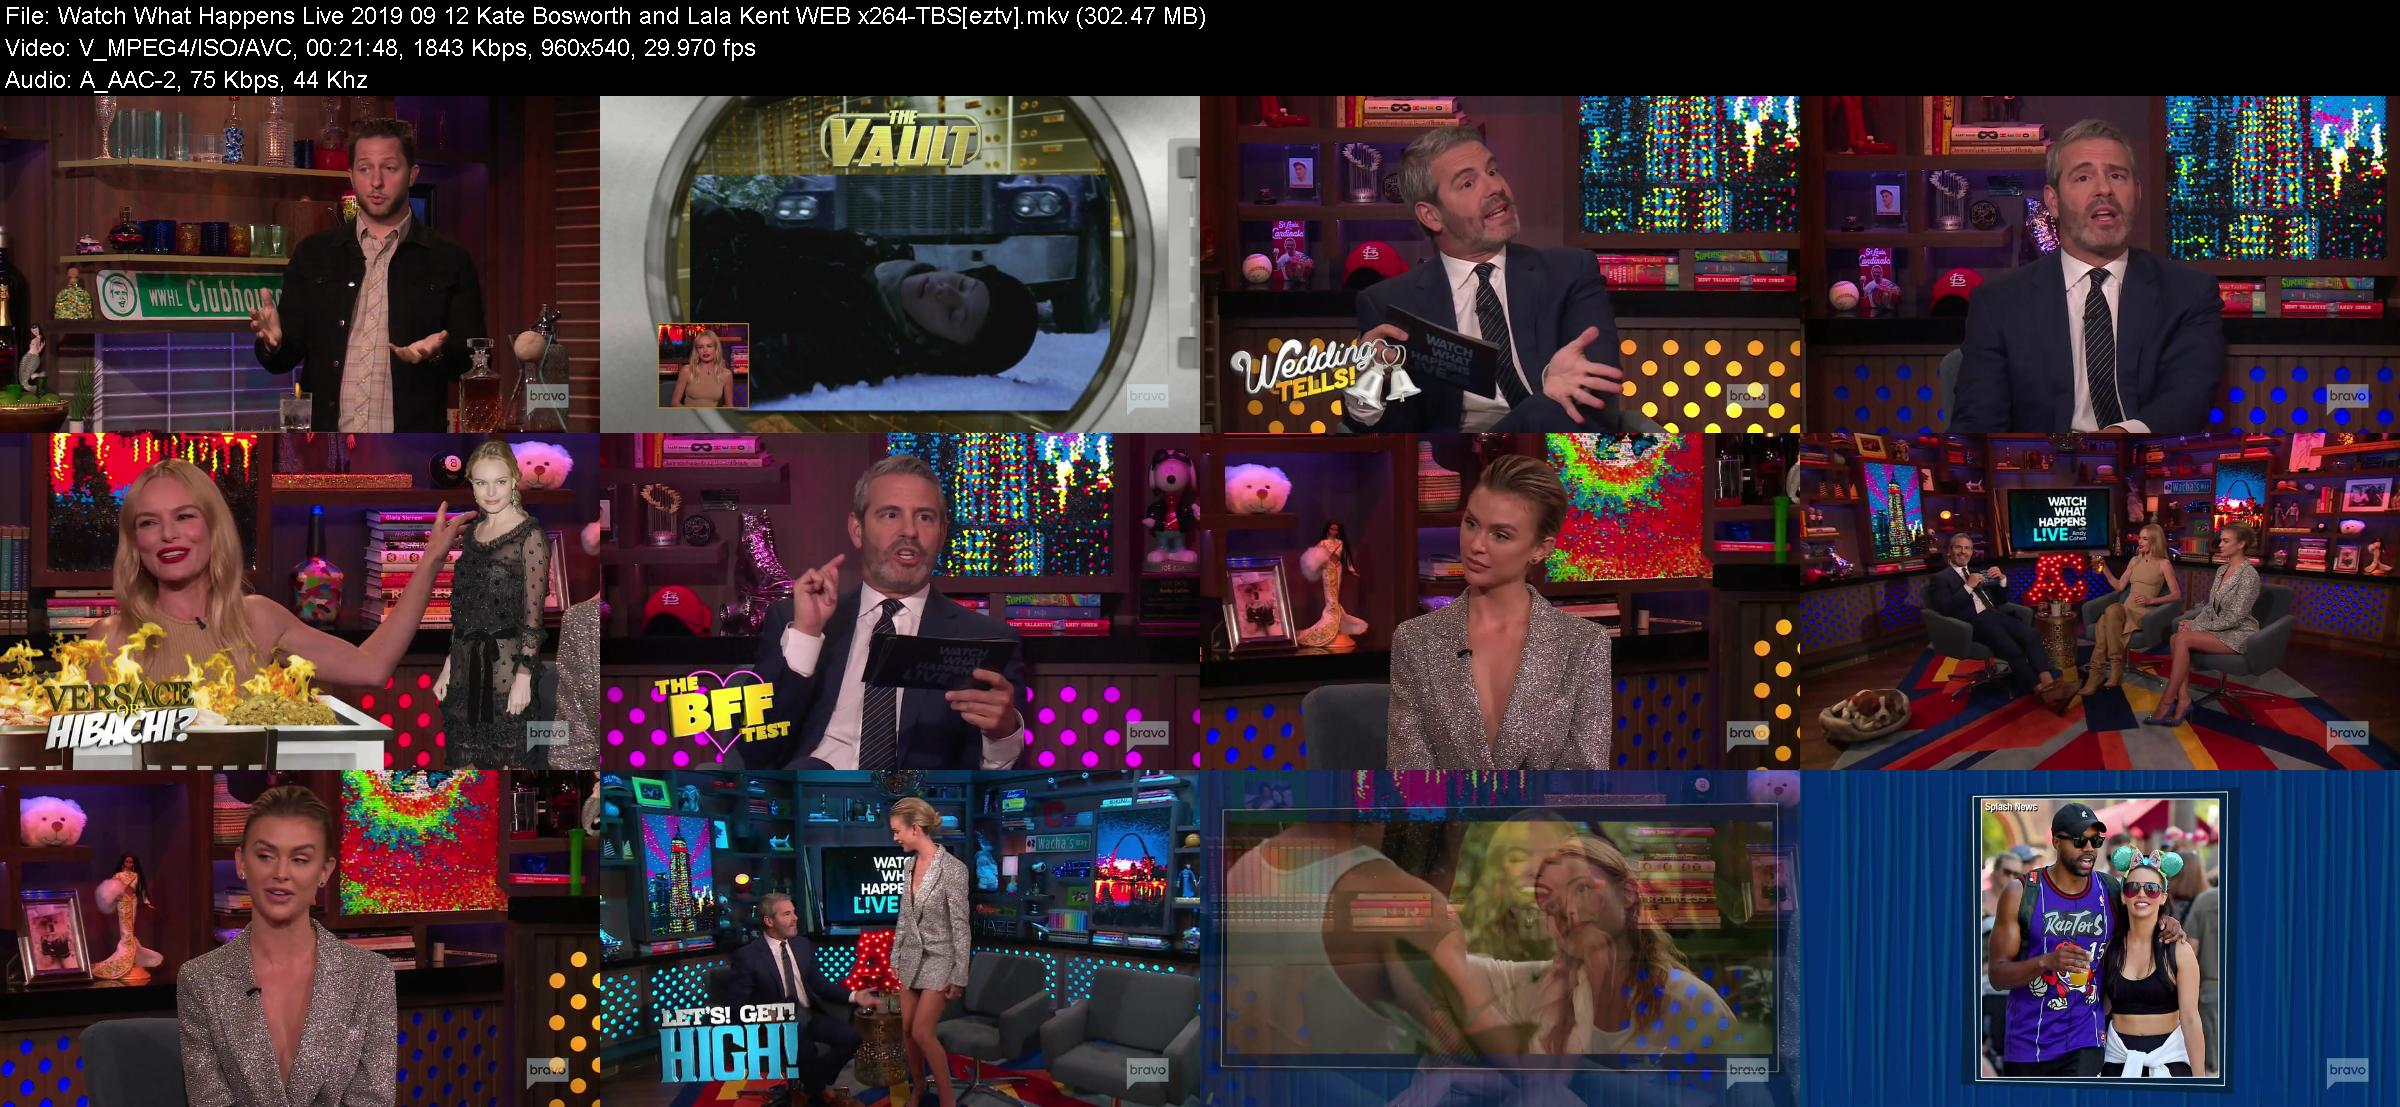 Watch What Happens Live 2019 09 12 Kate Bosworth and Lala Kent WEB x264-TBS